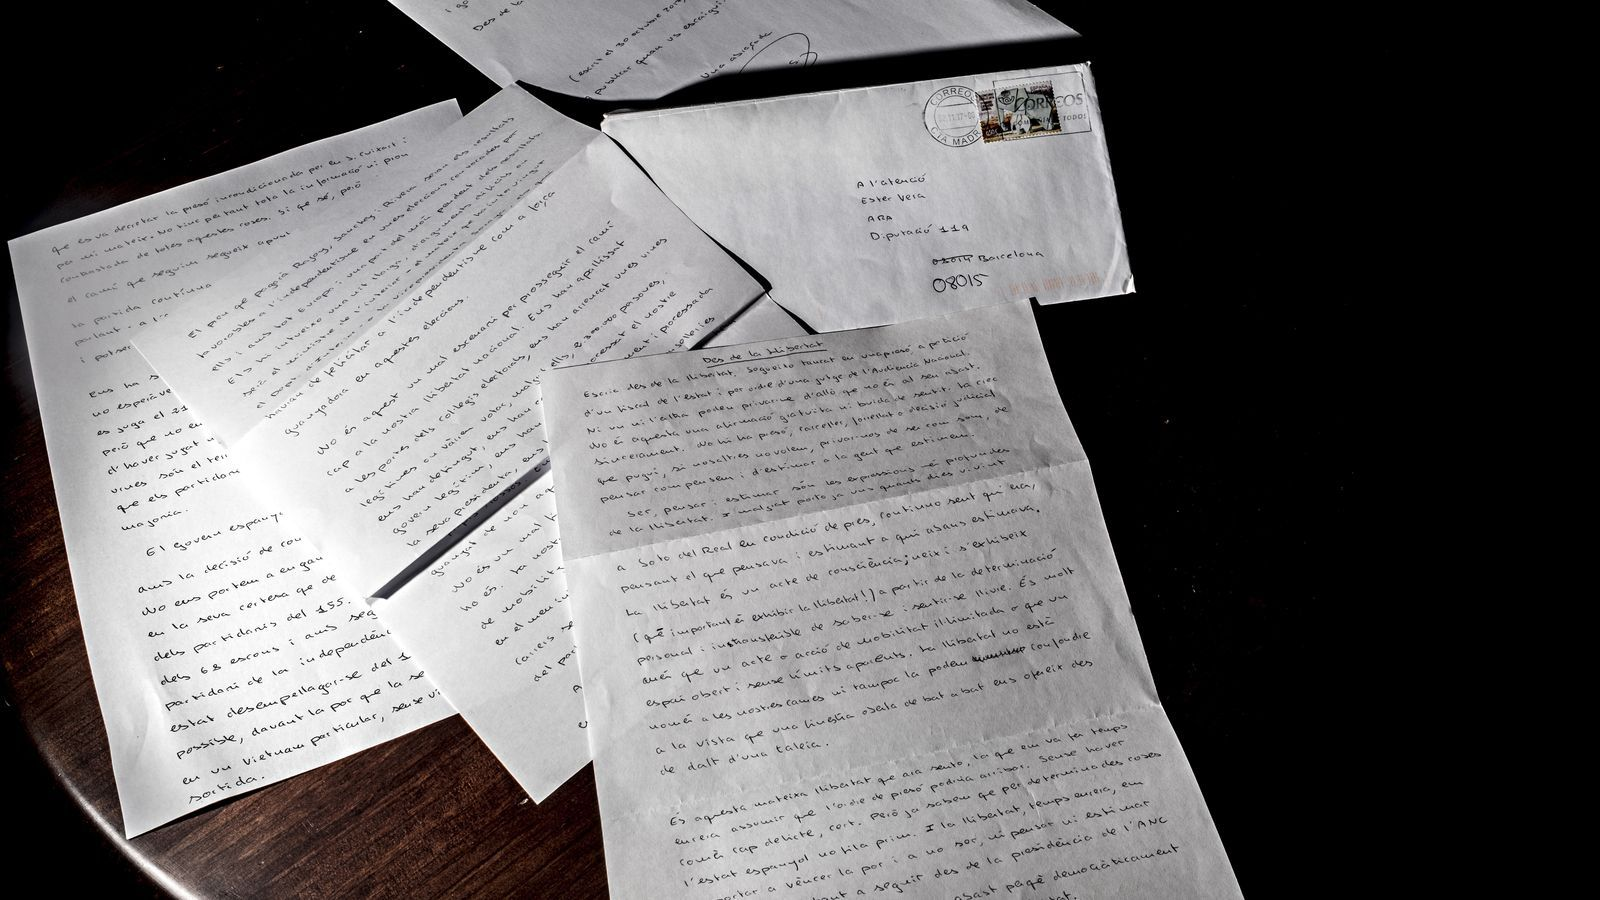 Read the first letter by Jordi Sànchez from Soto del Real prison